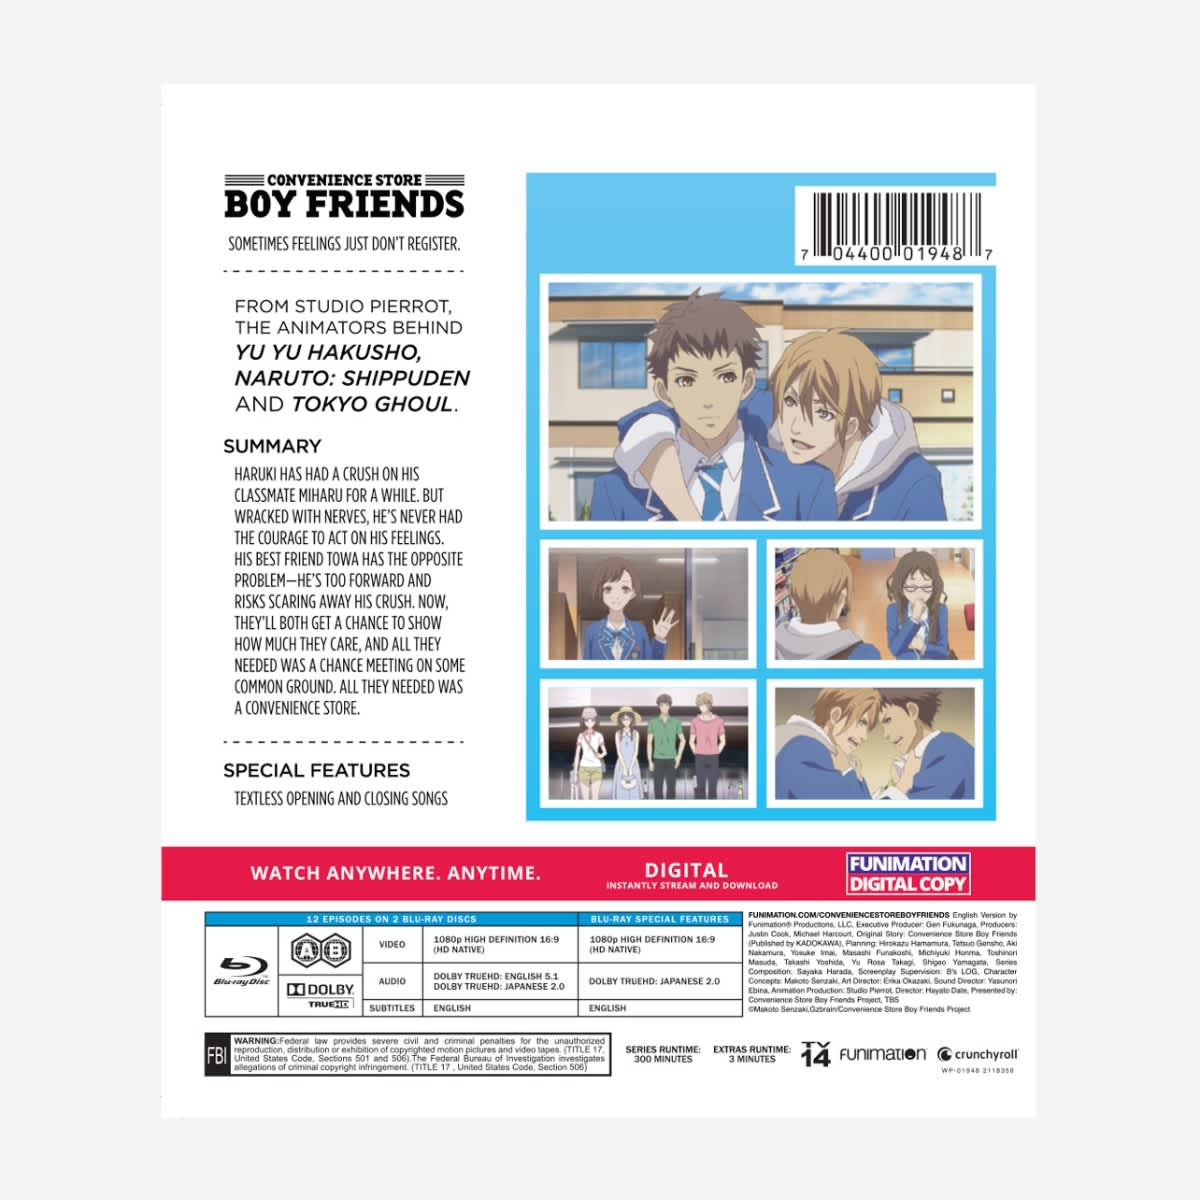 Convenience Store Boy Friends Essentials Blu-ray